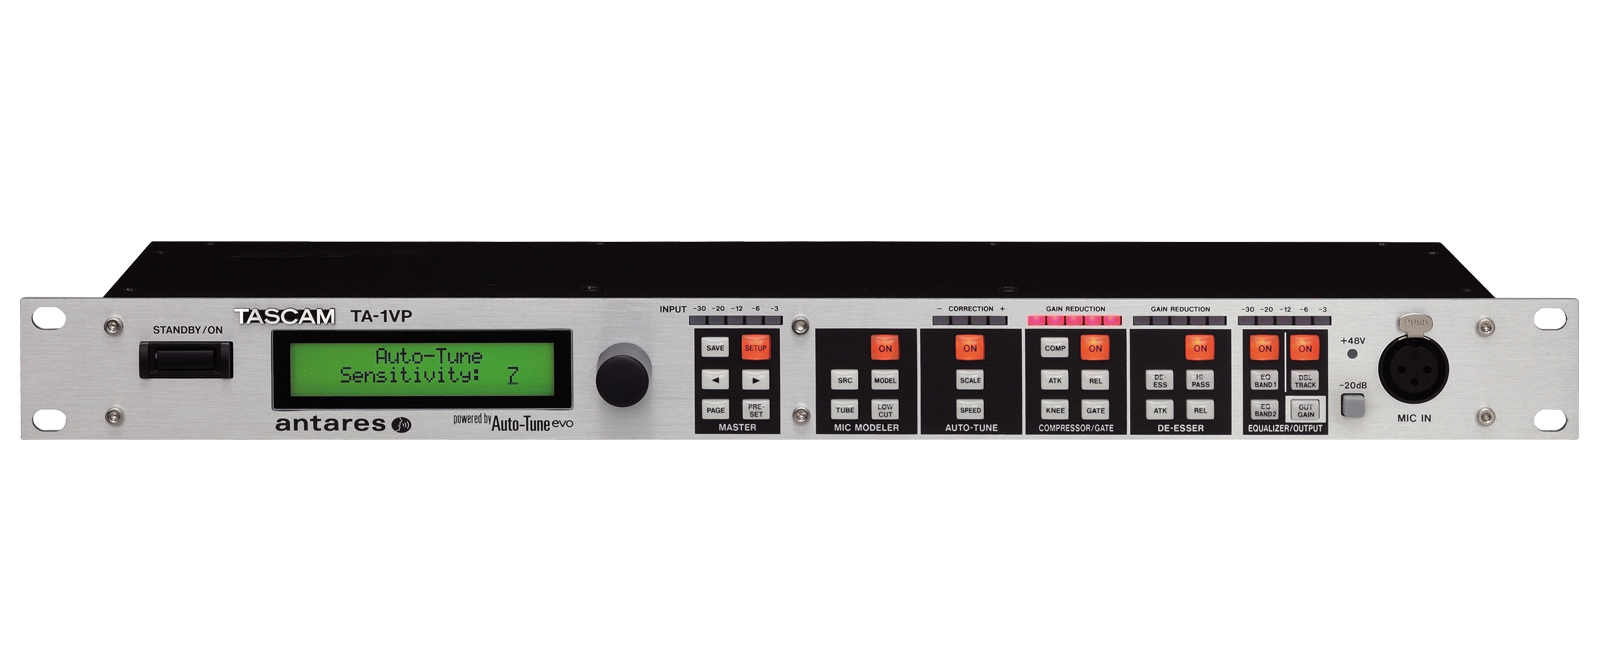 Ta 1vp Overview Tascam International Website Audio Preamp Circuits Microphone Amplifier And Integrated With Tascams Circuit Technology For Attaining High Sound Quality Fostered By The Development Of Professional Acoustic